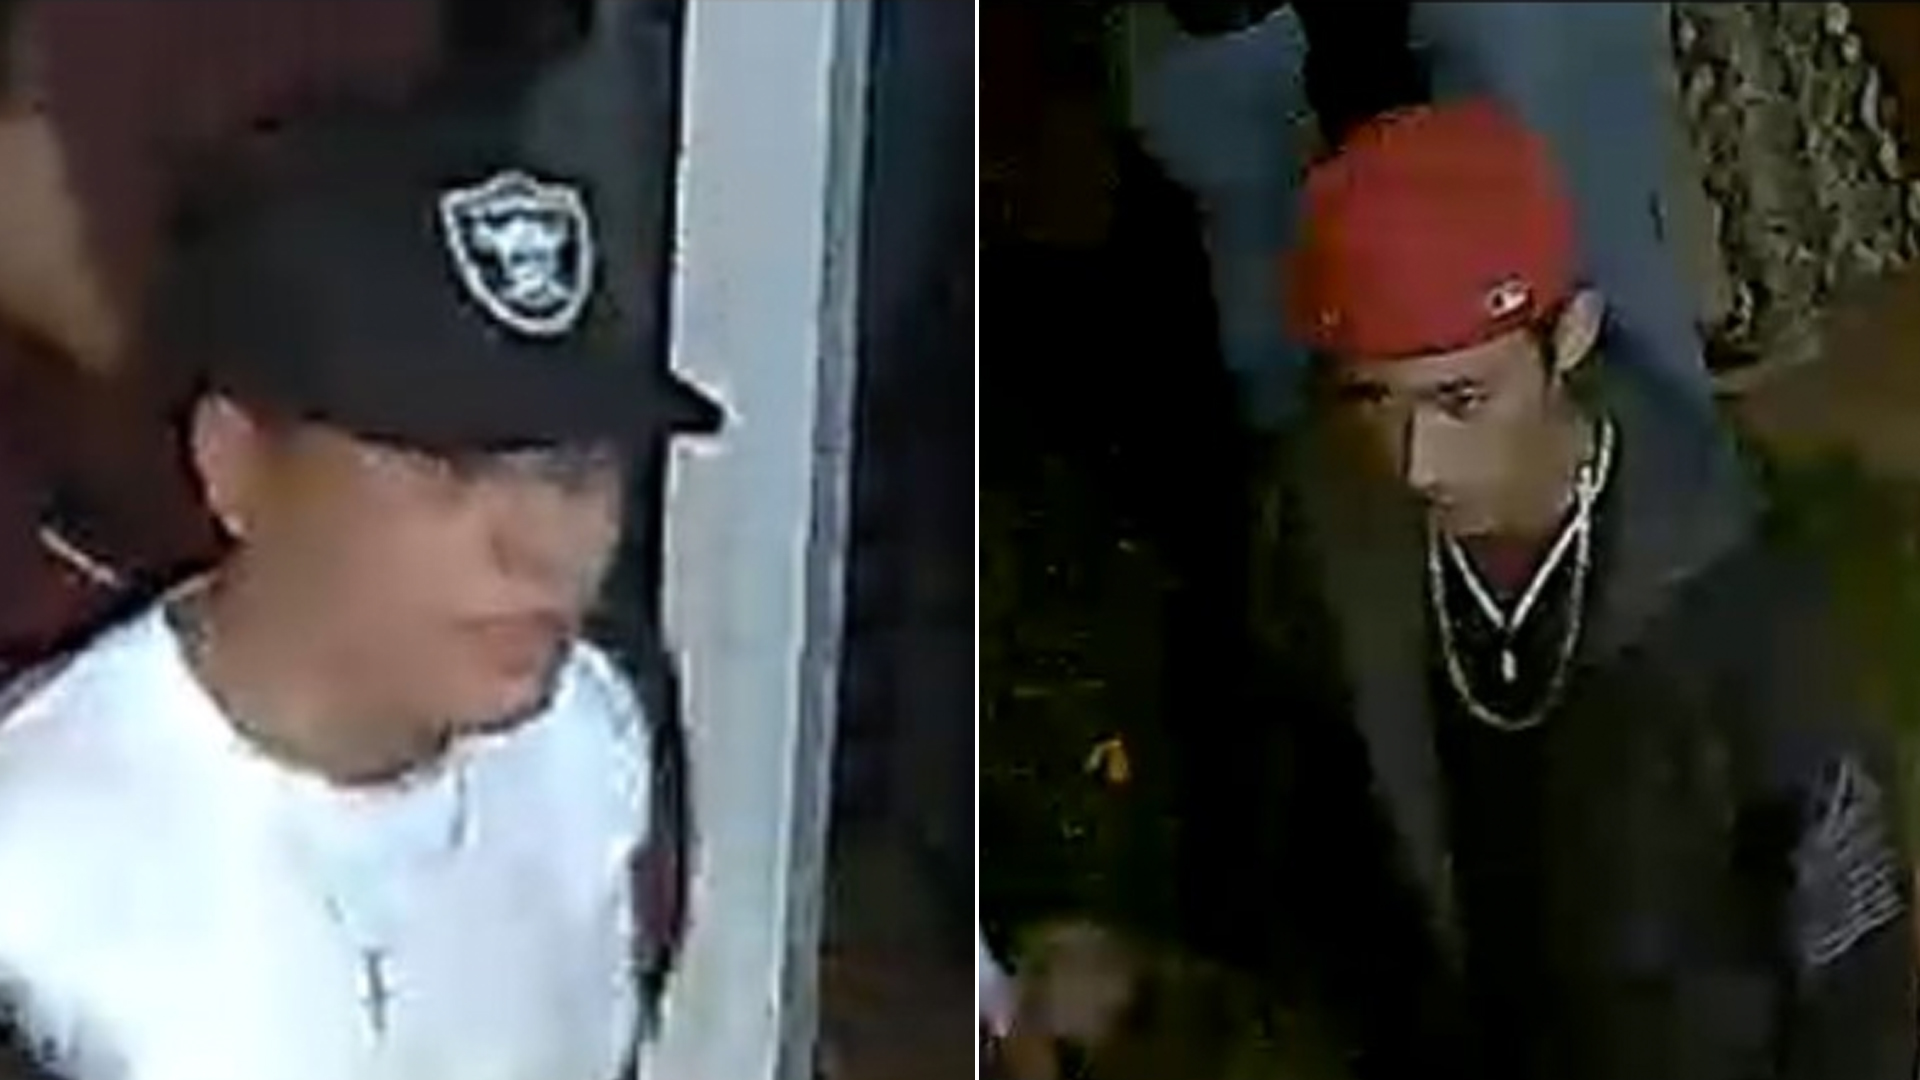 Two people wanted in connection to a fatal shooting at a West Covina home on May 31, 2019, are seen in undated surveillance photos provided by the Los Angeles County Sheriff's Department.